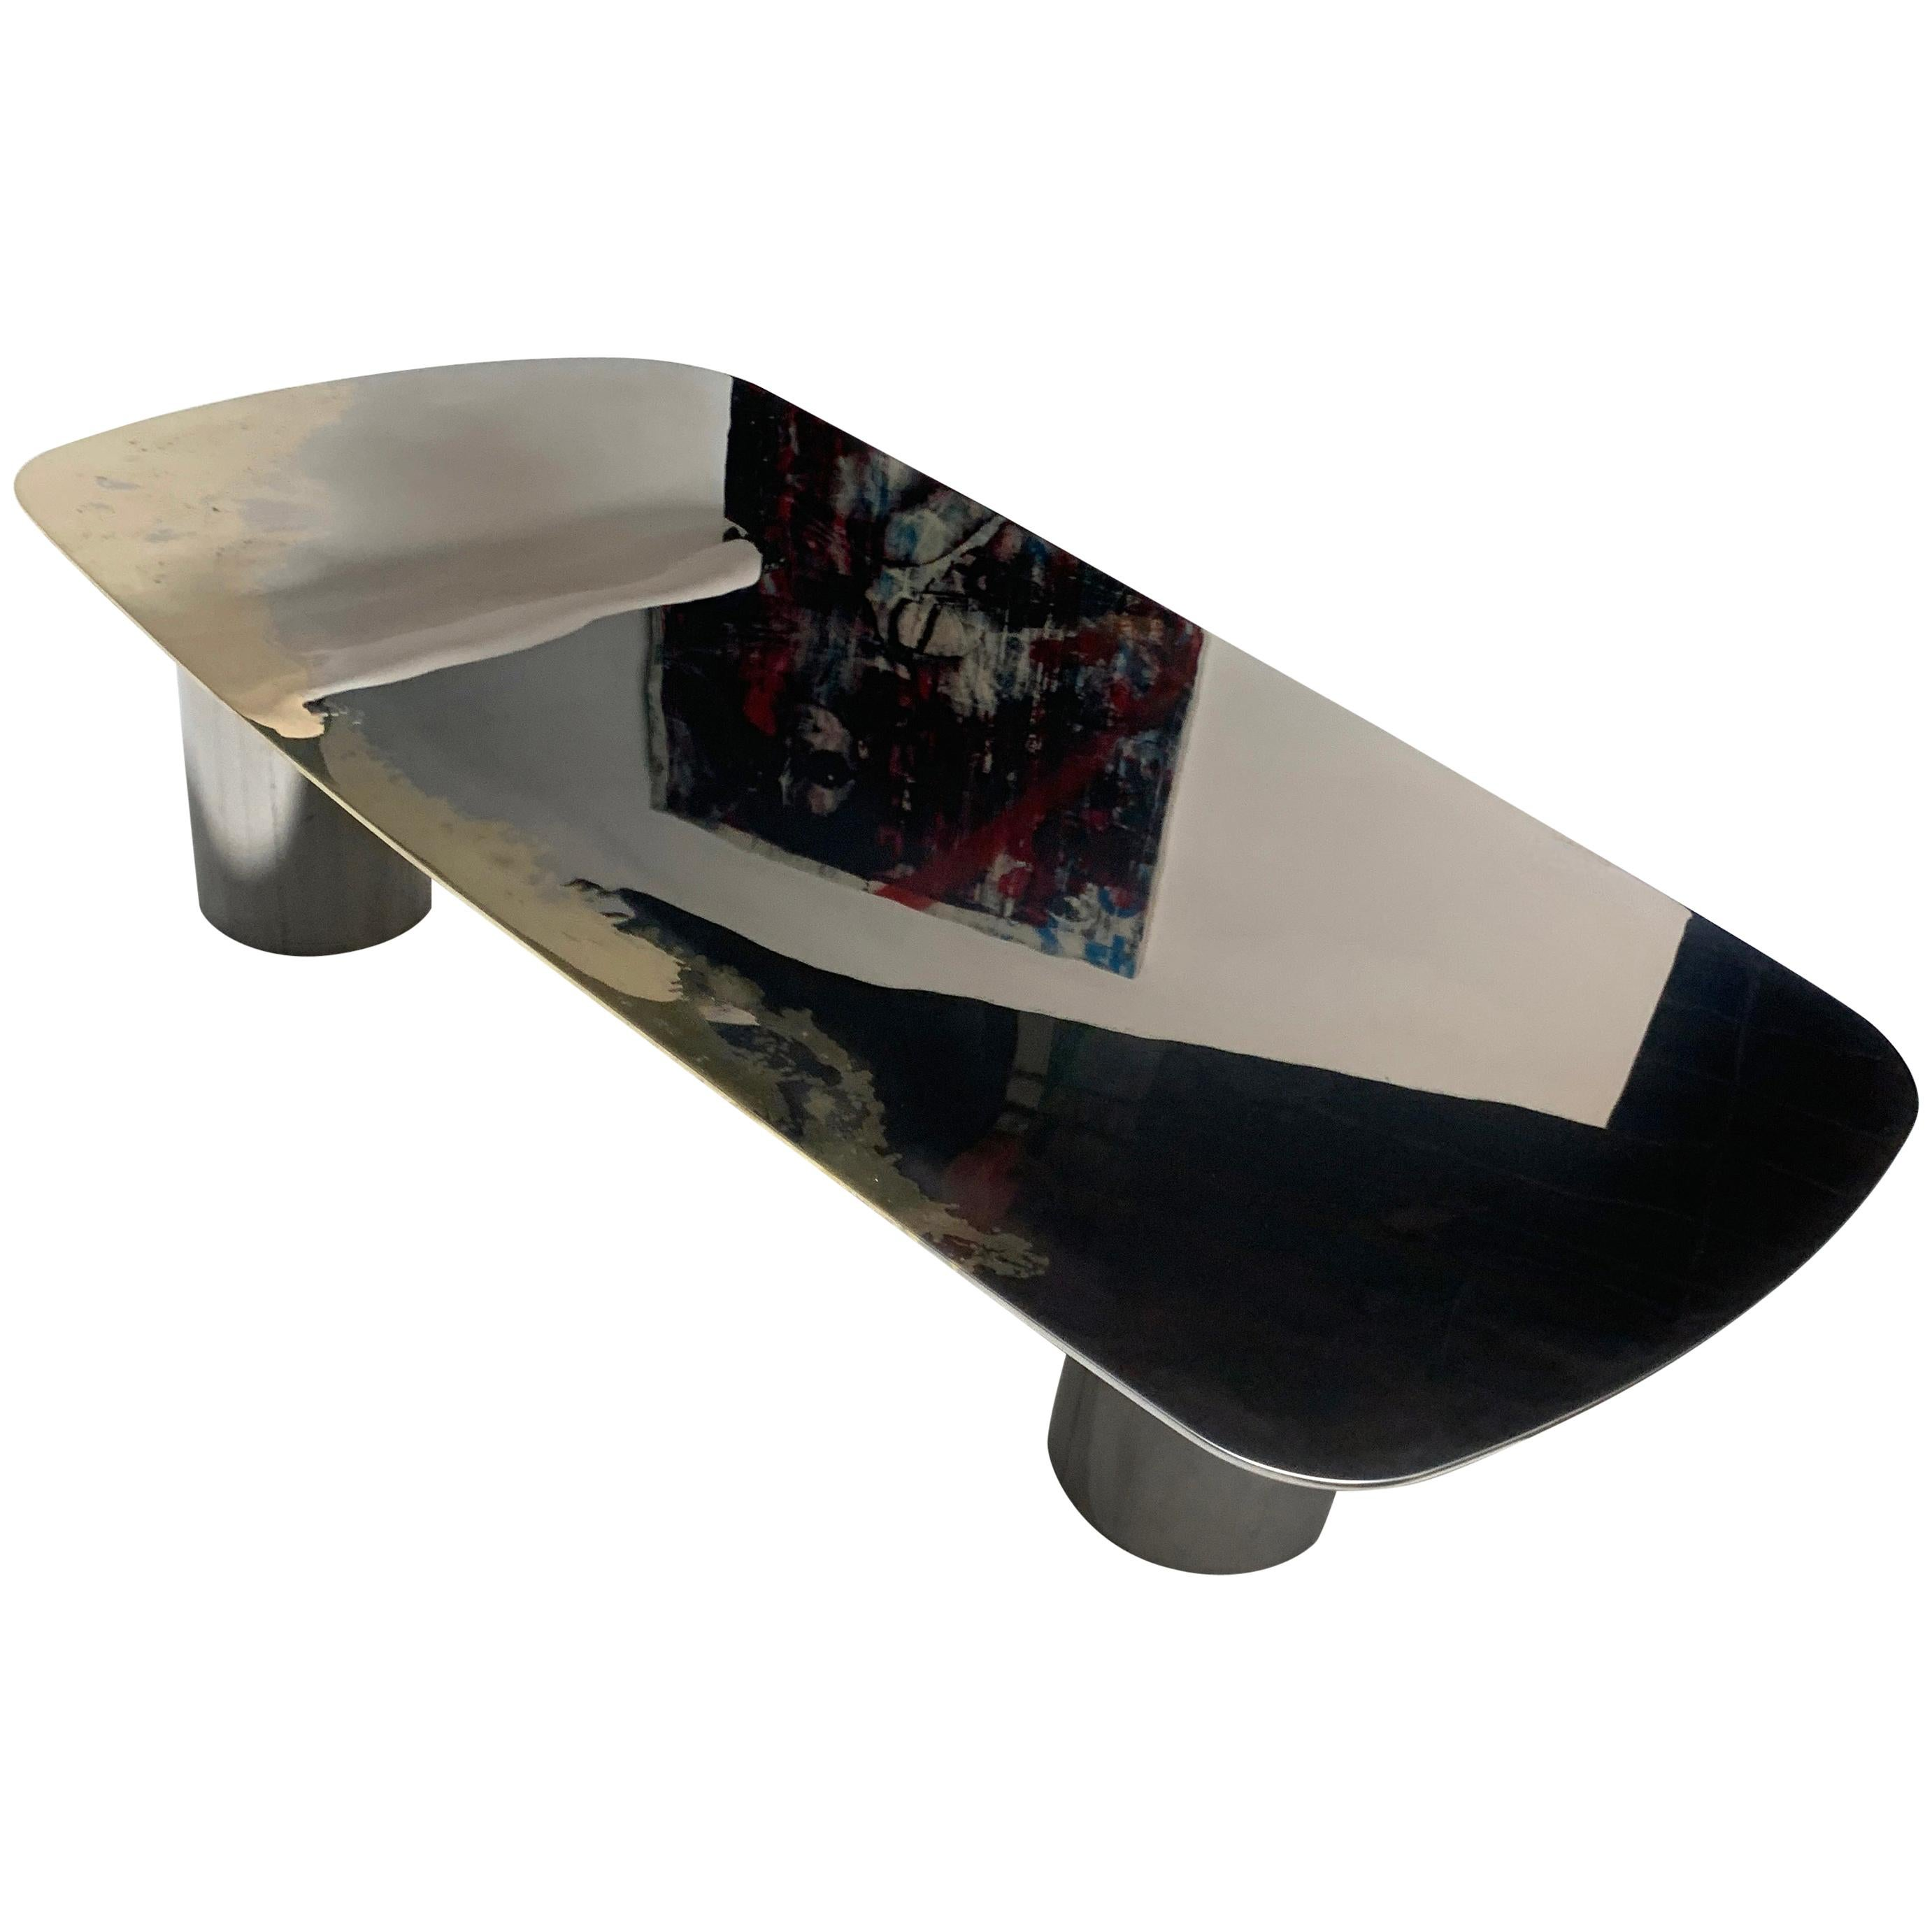 Polished Bimetal Two-Tone Brass and Stainless-Steel Hand-Crafted Coffee Table